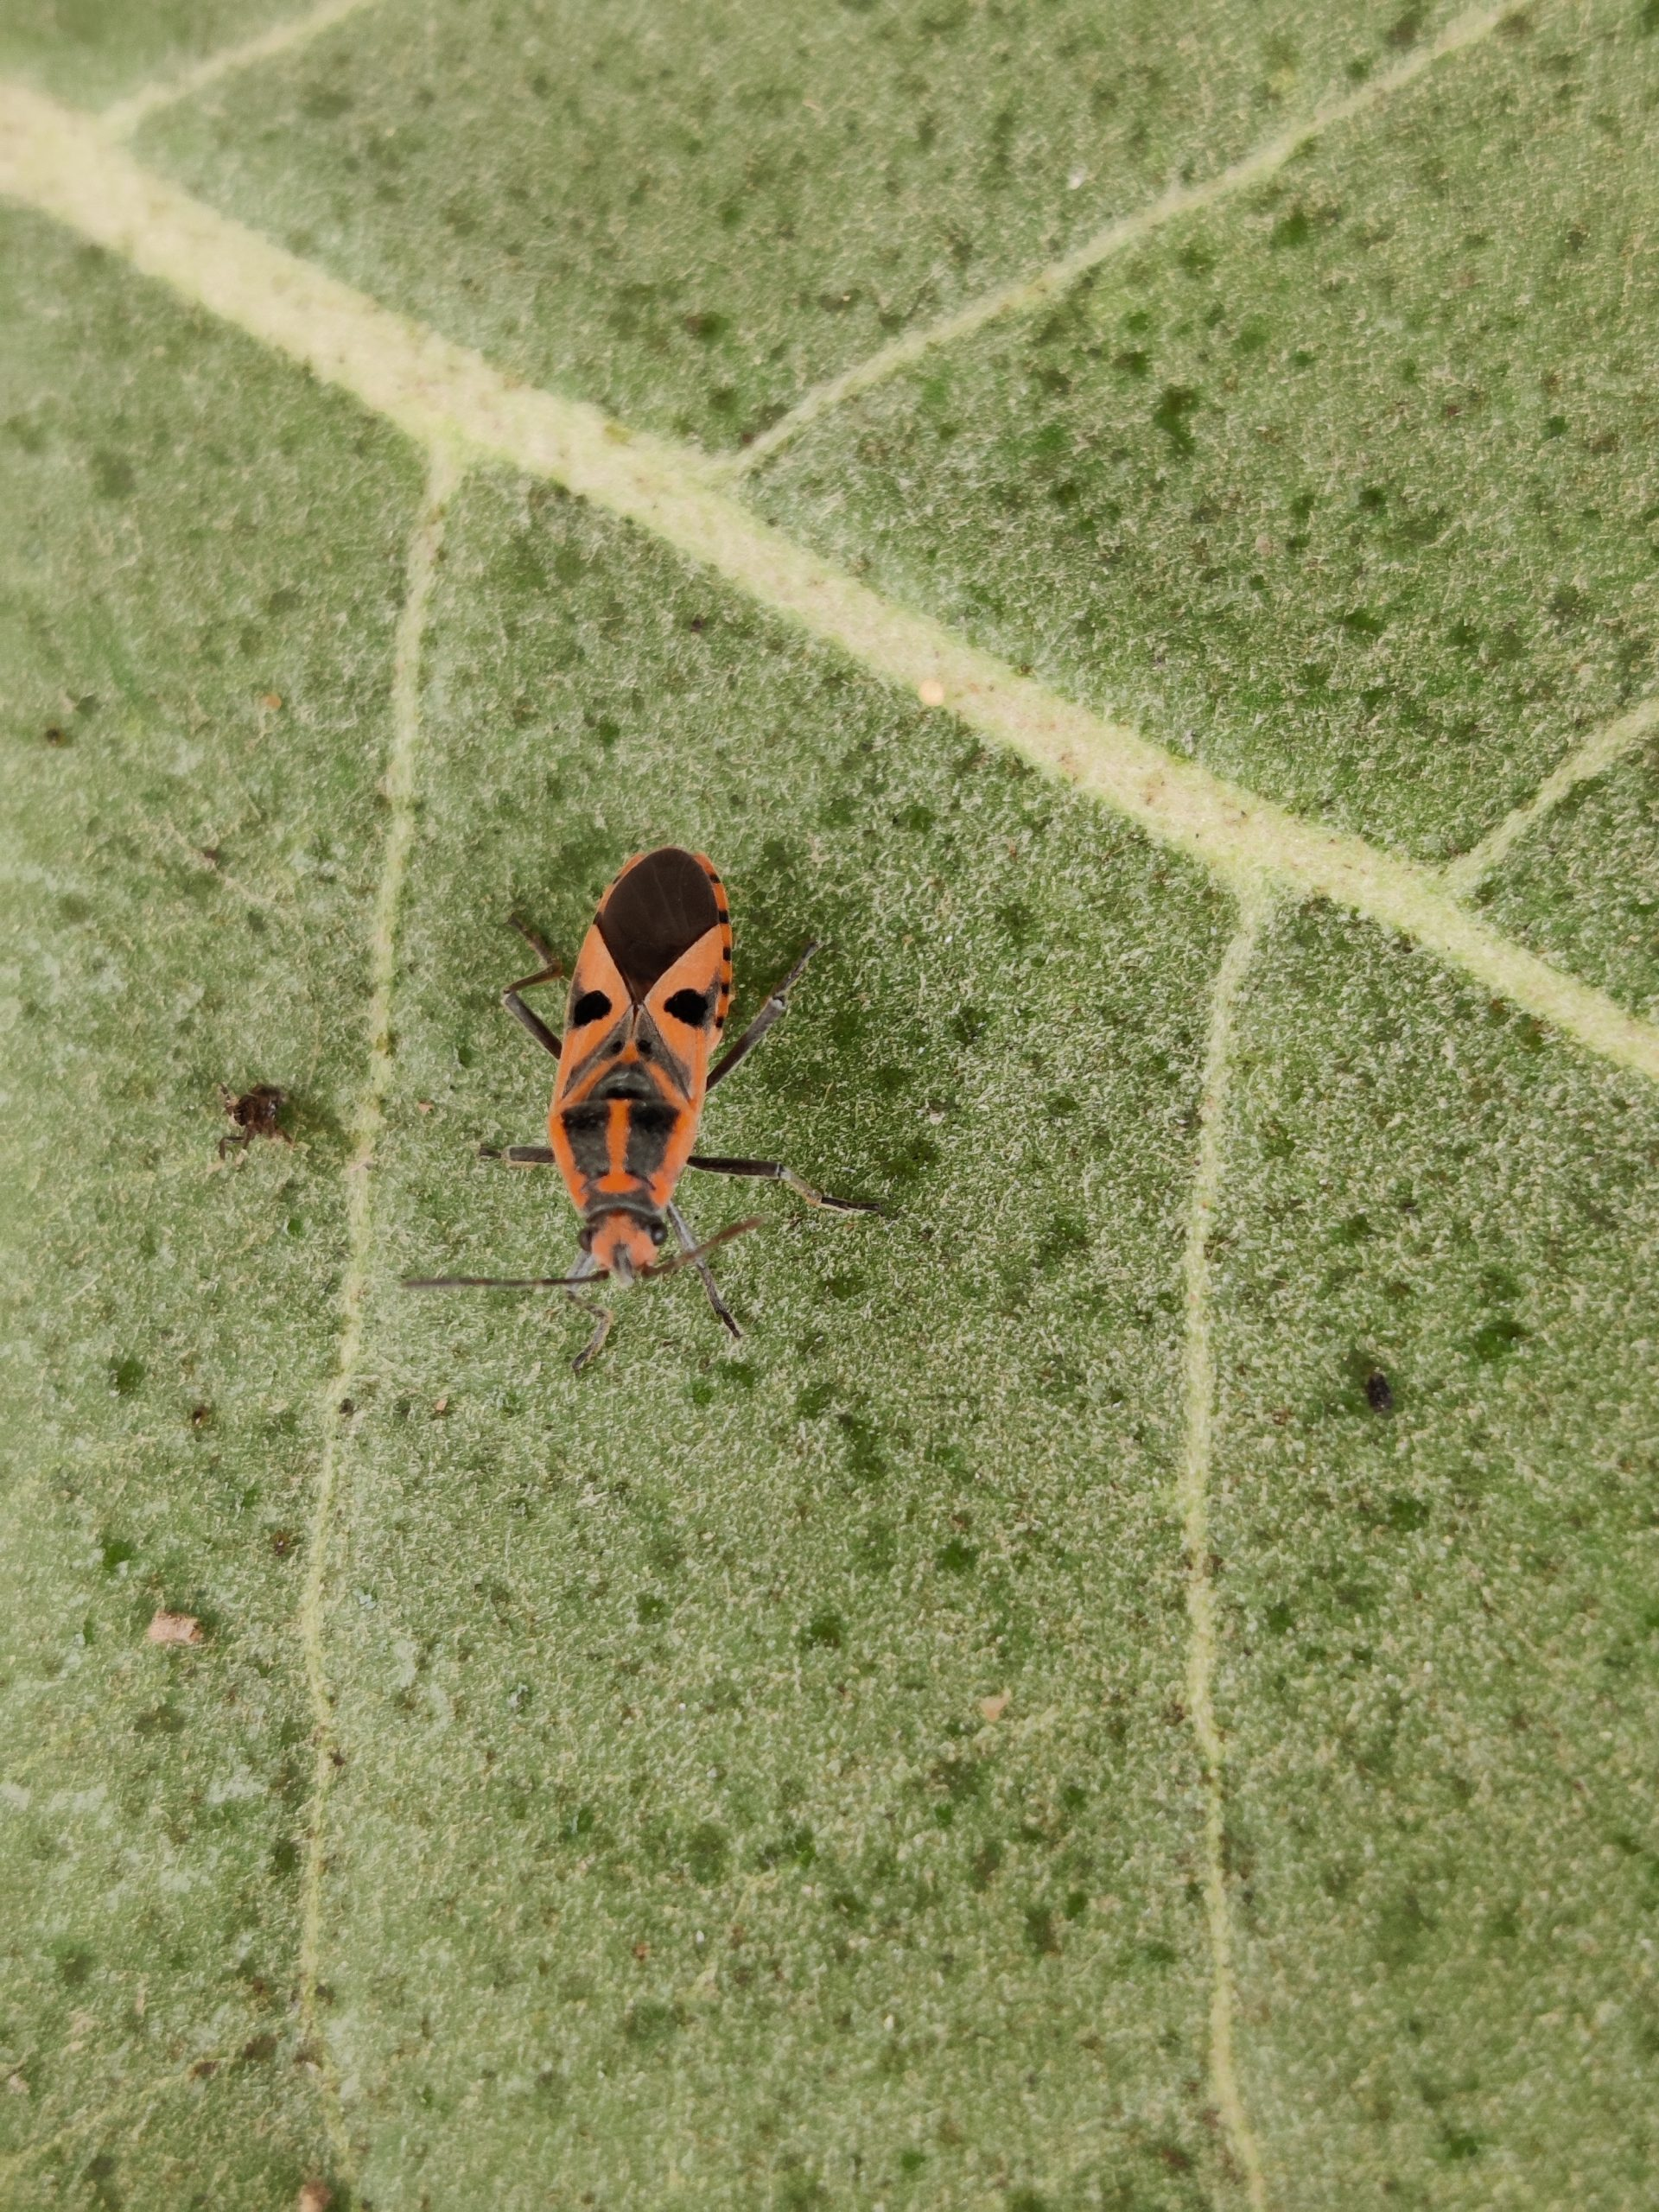 Insect on plant leaf